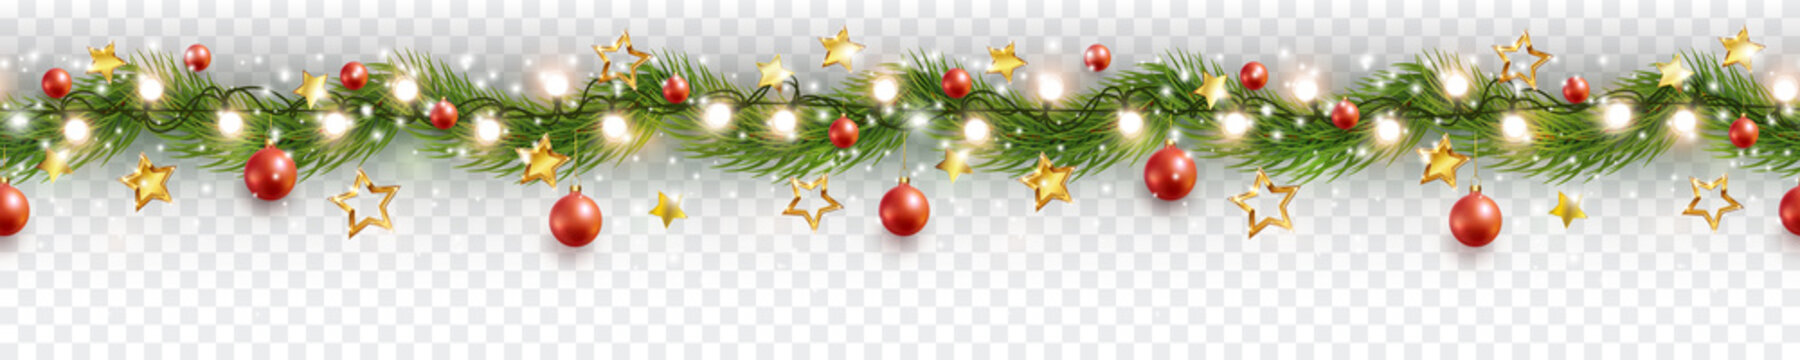 Border with green fir branches, gold stars, red balls, lights isolated on transparent background. Pine, xmas evergreen plants seamless banner. Vector Christmas tree garland decoration